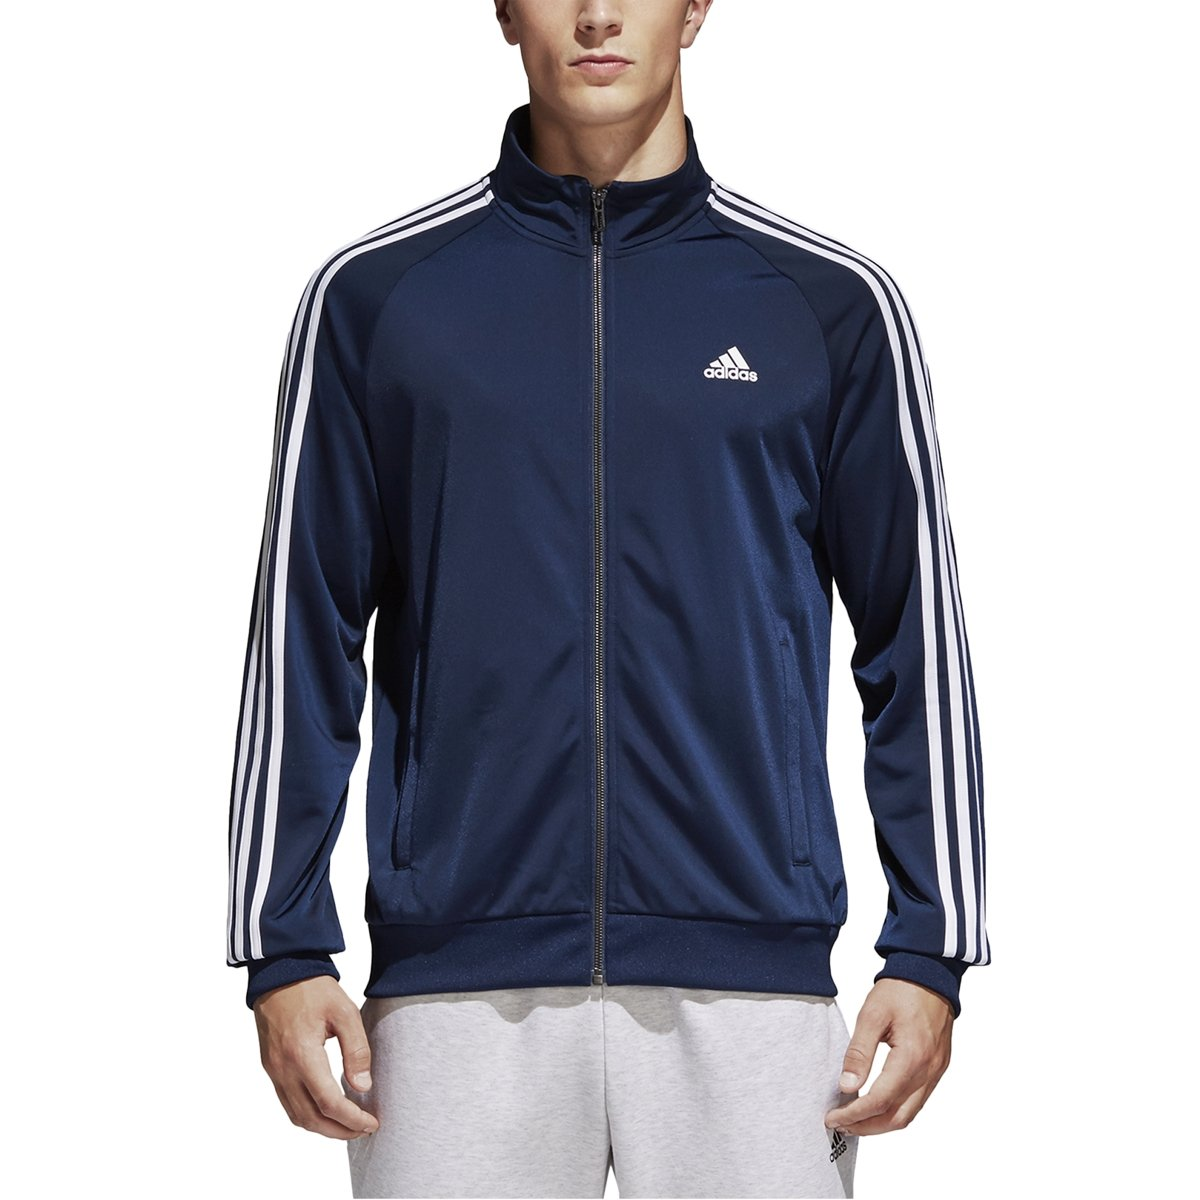 adidas Essentials 3S Tricot Track Jacket Men's All Sports LT Collegiate Navy-White